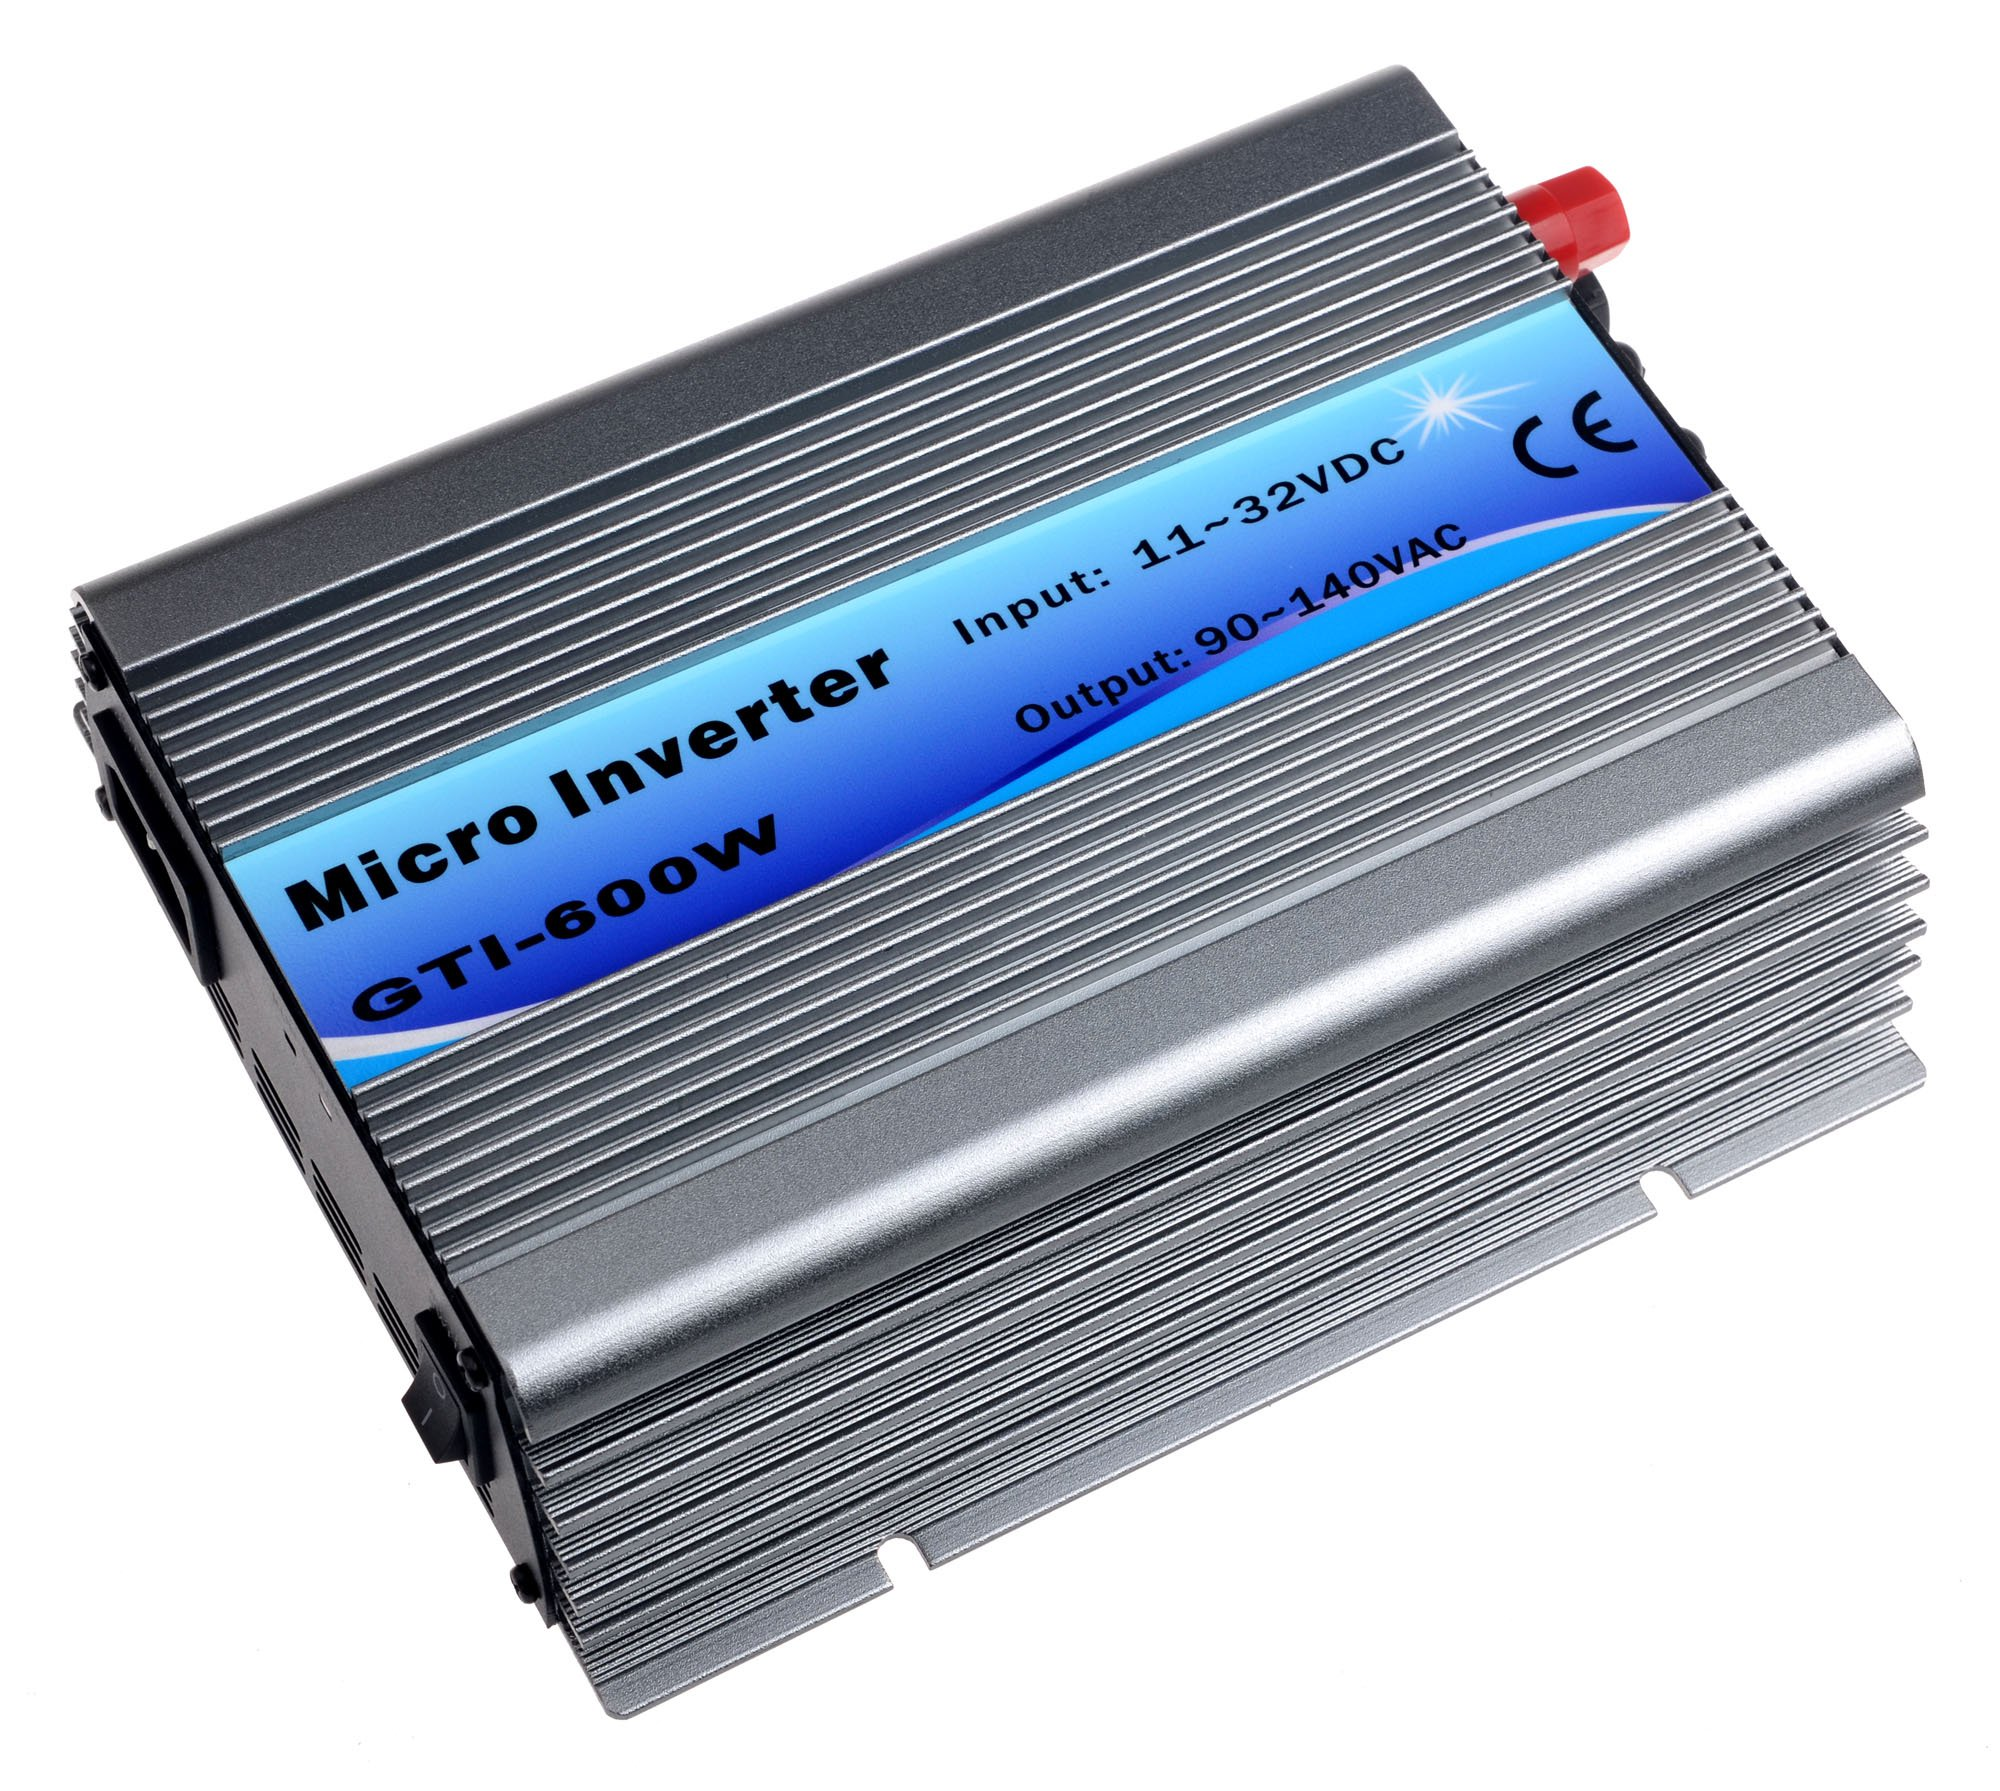 SolarEpic 600W Micro Grid Tie Inverter 11-32V DC W/ MPPT 110V Output Stackable by SolarEpic (Image #1)